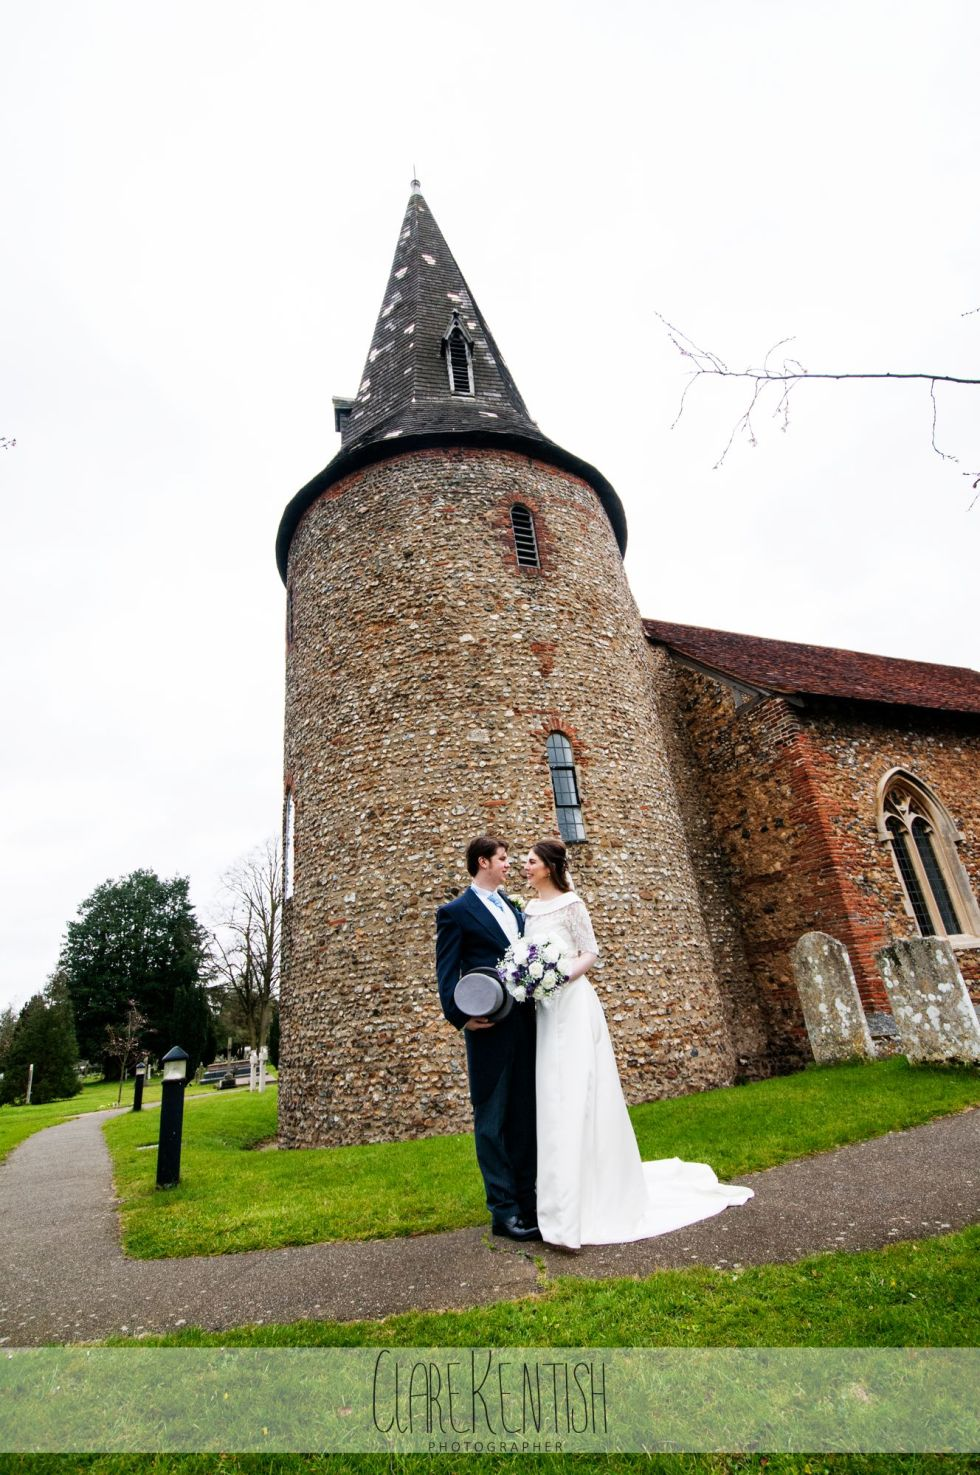 essex_wedding_photographer_rayleigh_photography_clare_kentish_forrester_park_chelmsford_262